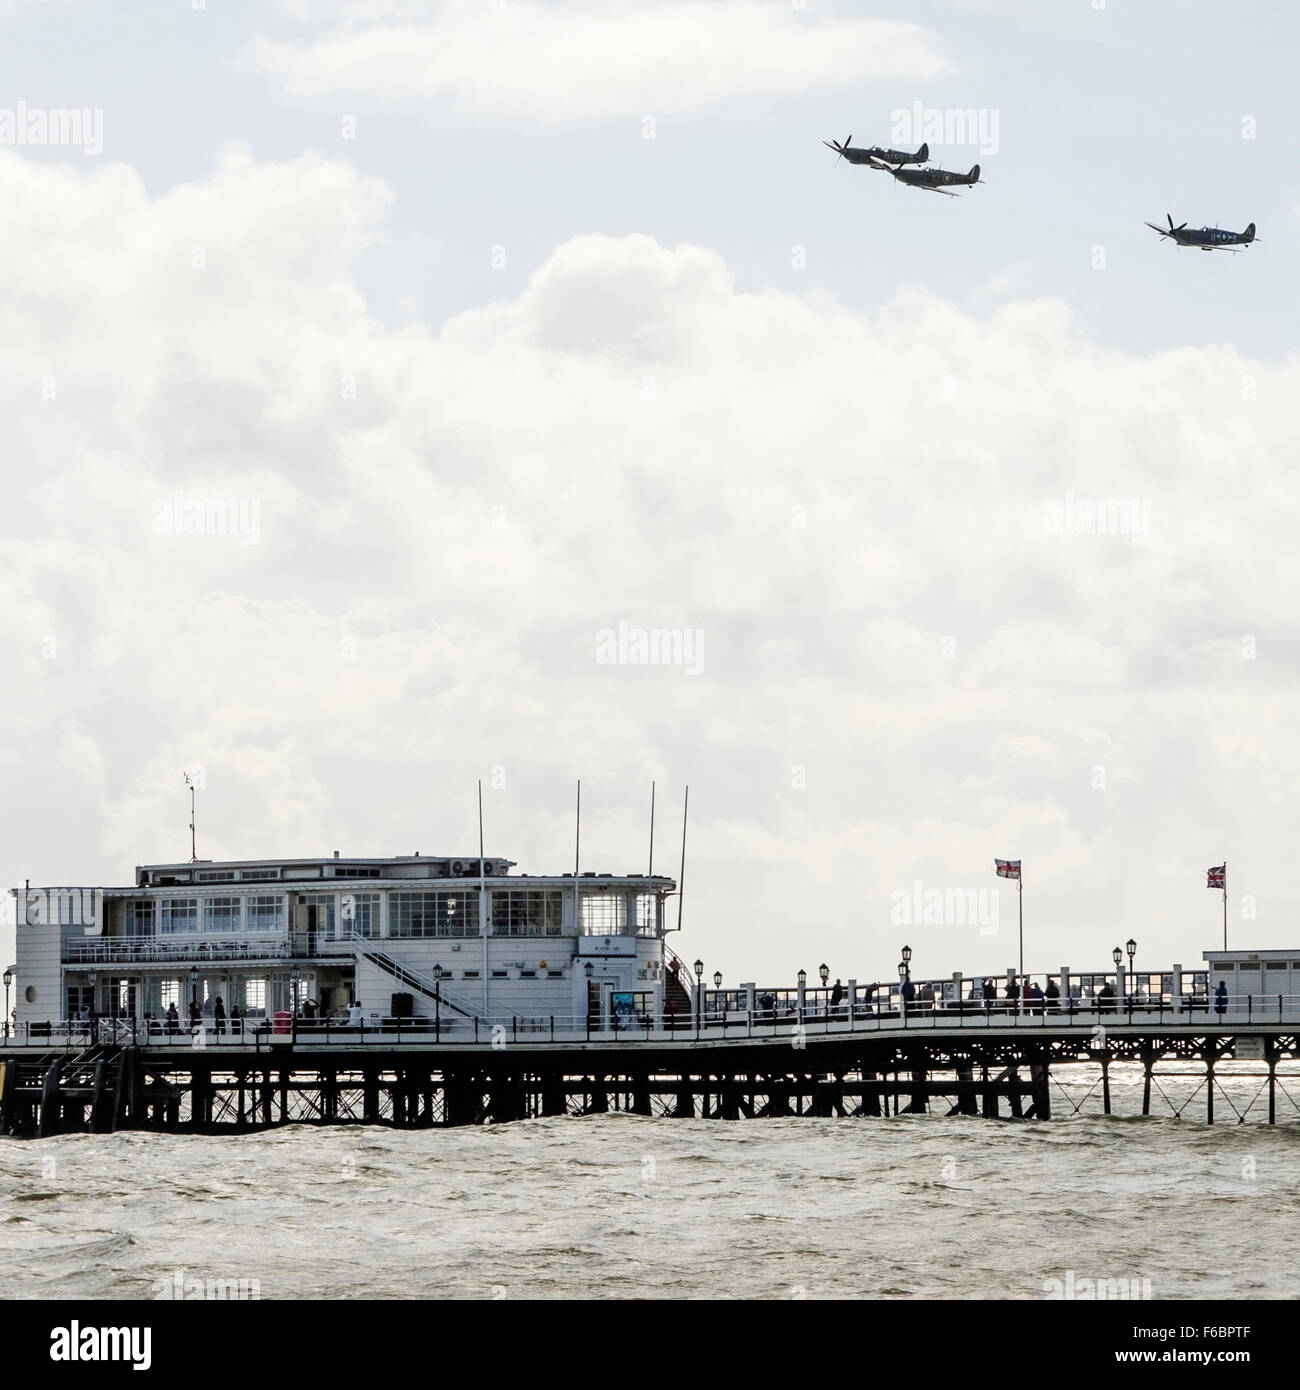 Battle of Britain: Historic flypast for 75th anniversary at Worthing, UK, 15/09/2015 :  A group of 3 Battle of Britain - Stock Image